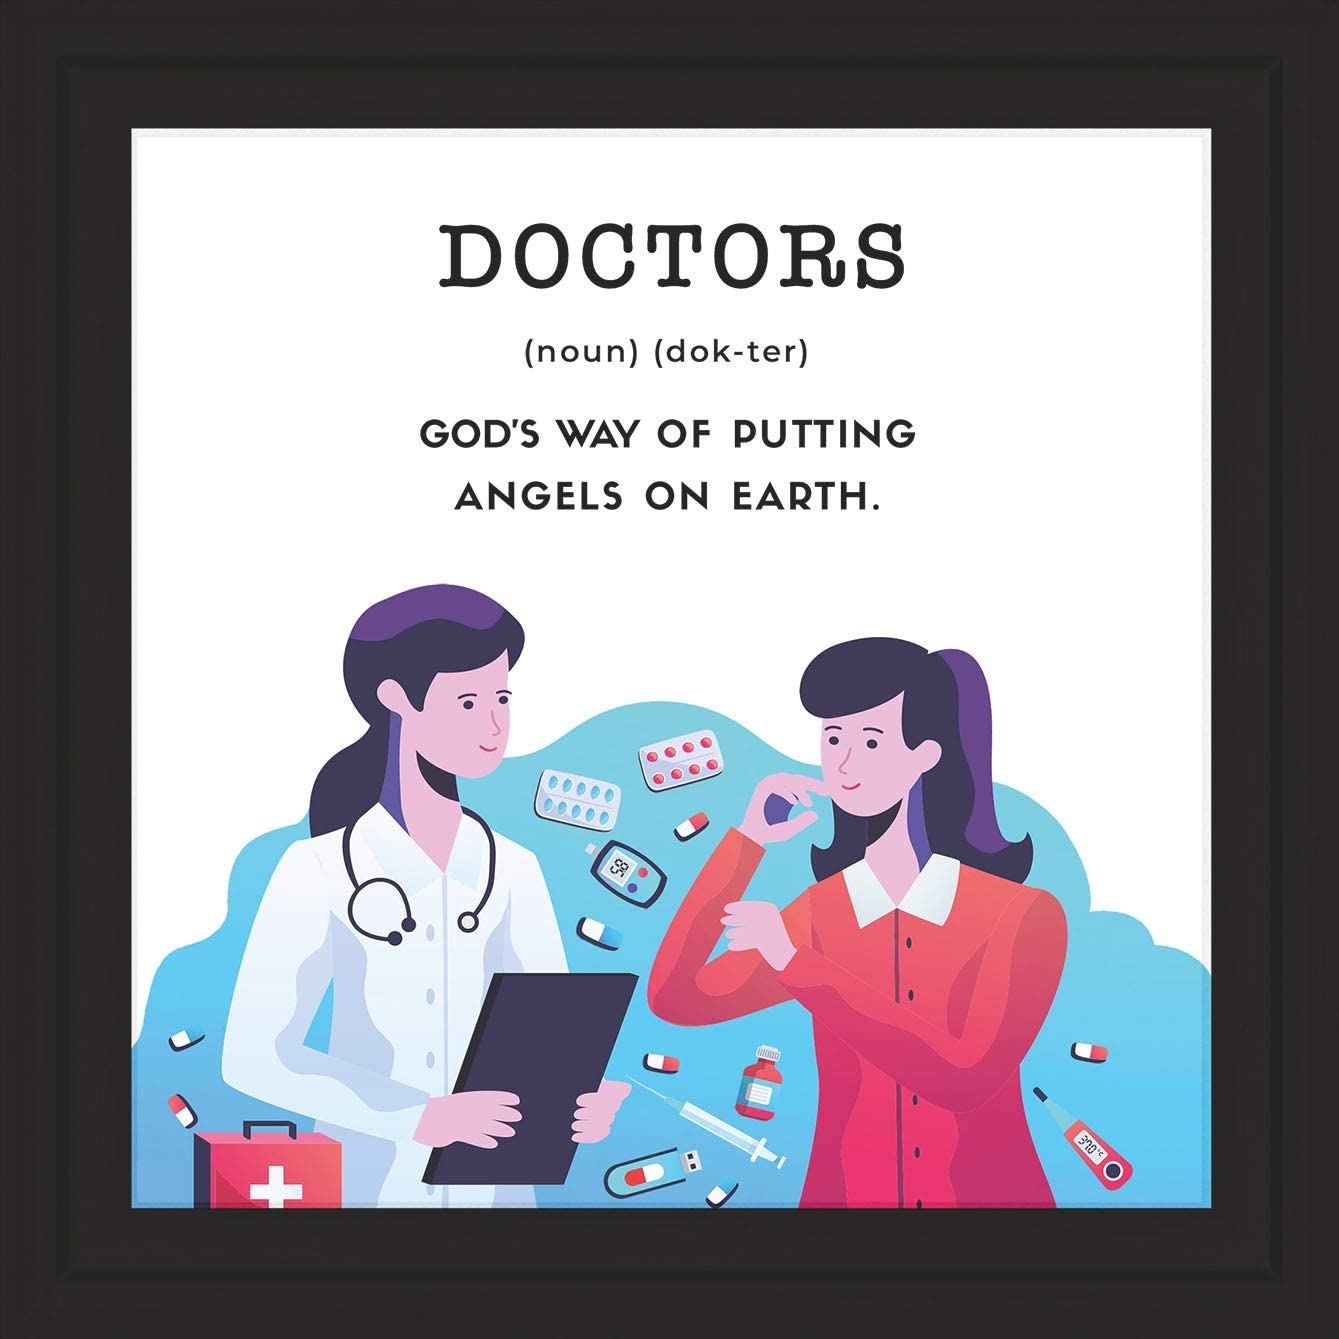 Medical Office Decorations | Appreciation Sign Gifts For Doctors | School Nurse Wall Art | Gift For Medical Student | Doctor Desk Art Decor Accessories | Medical Picture Frame